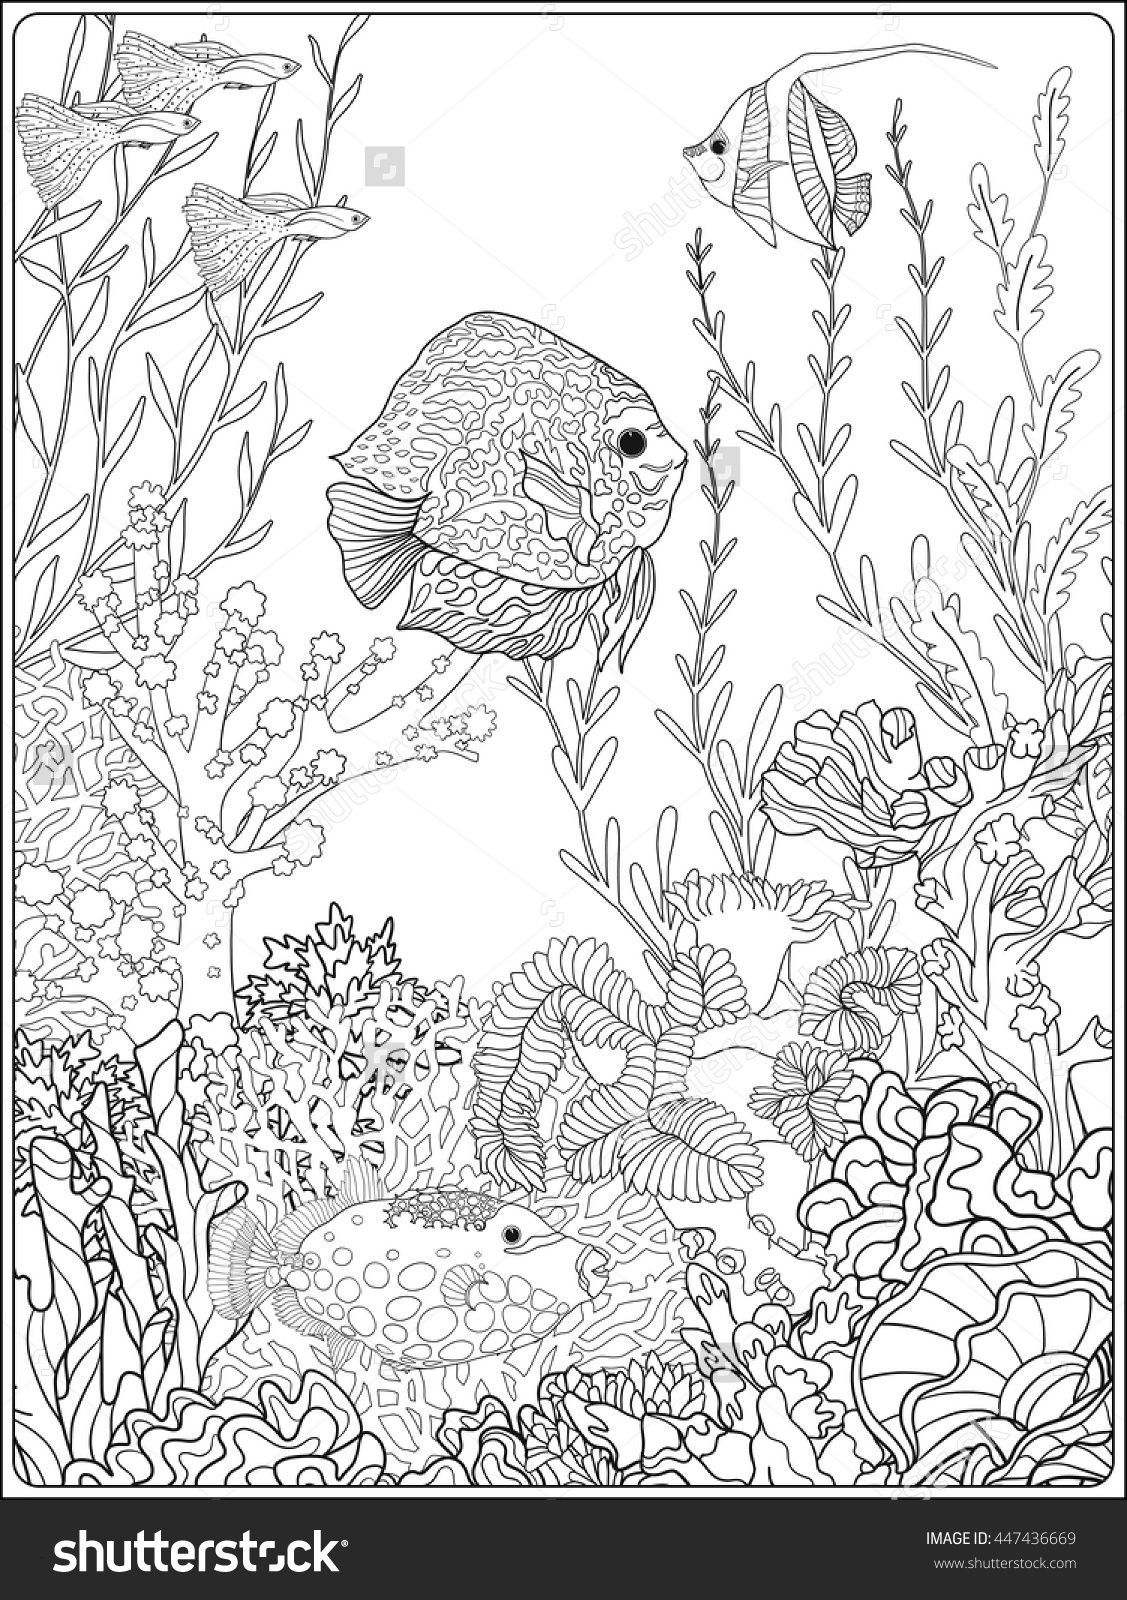 detailed fish coloring pages detailed landscape coloring pages for adults google fish detailed pages coloring